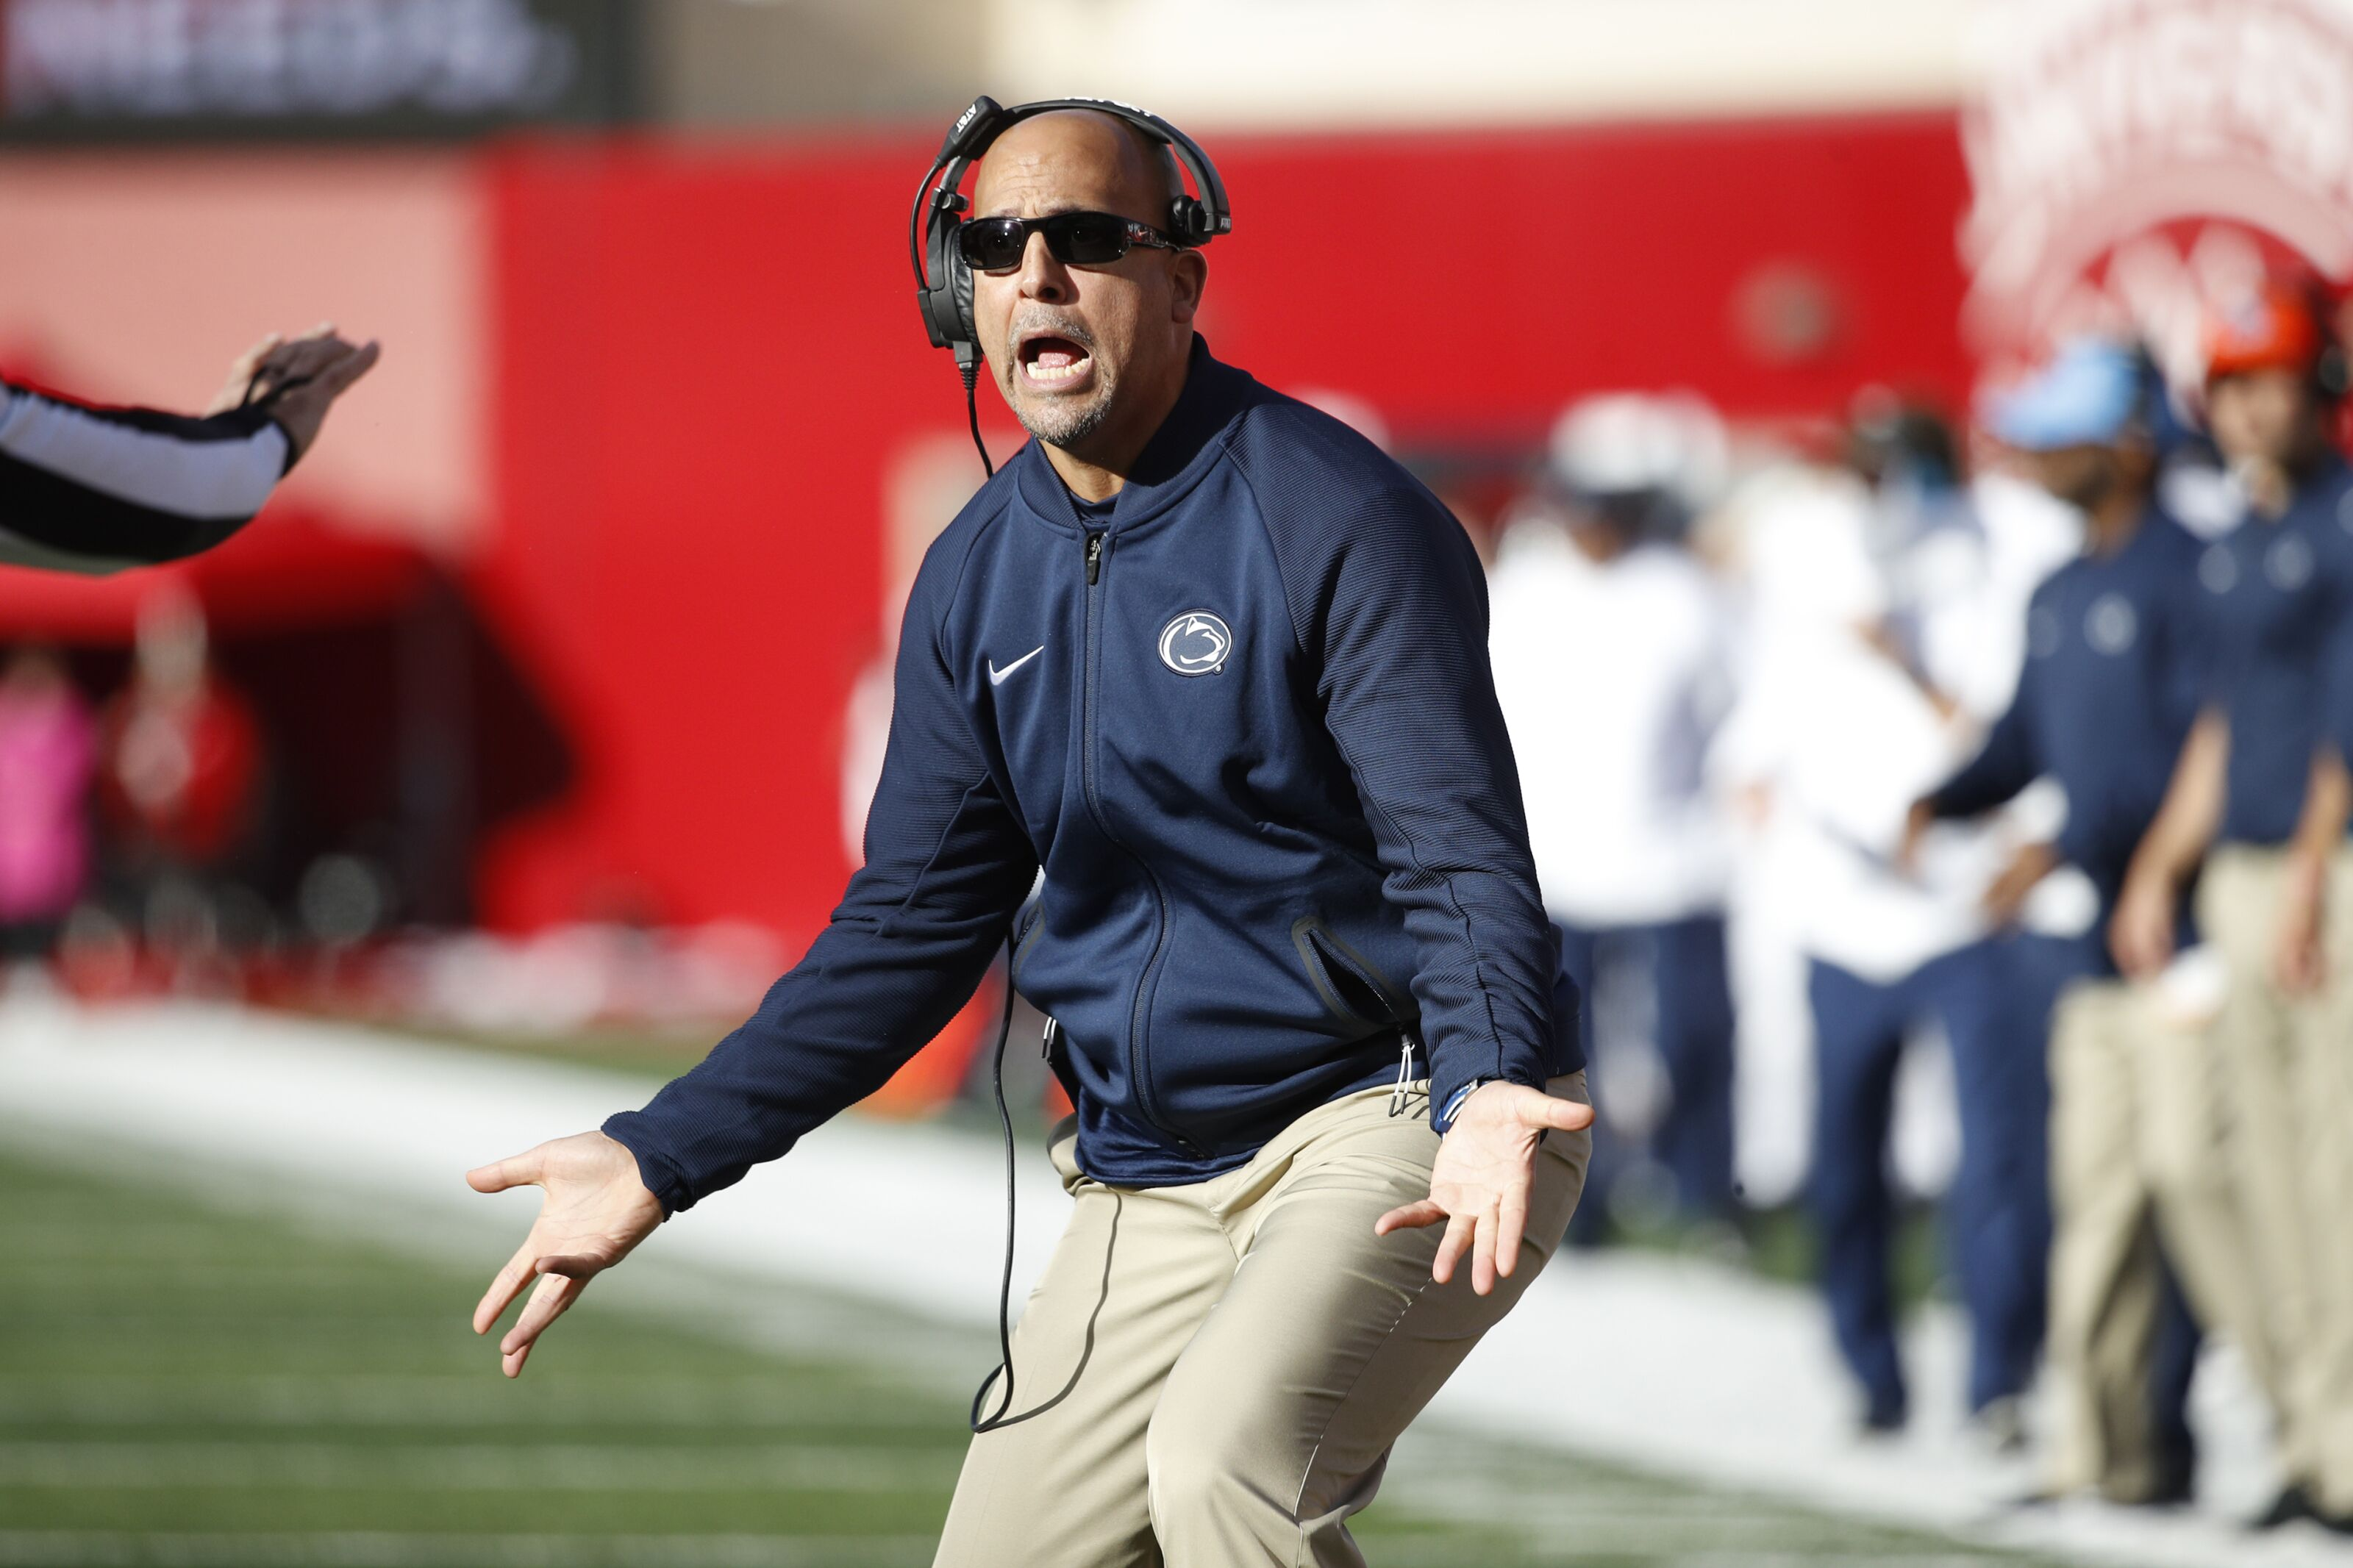 Penn State Football: Is James Franklin's aggressive approach backfiring?